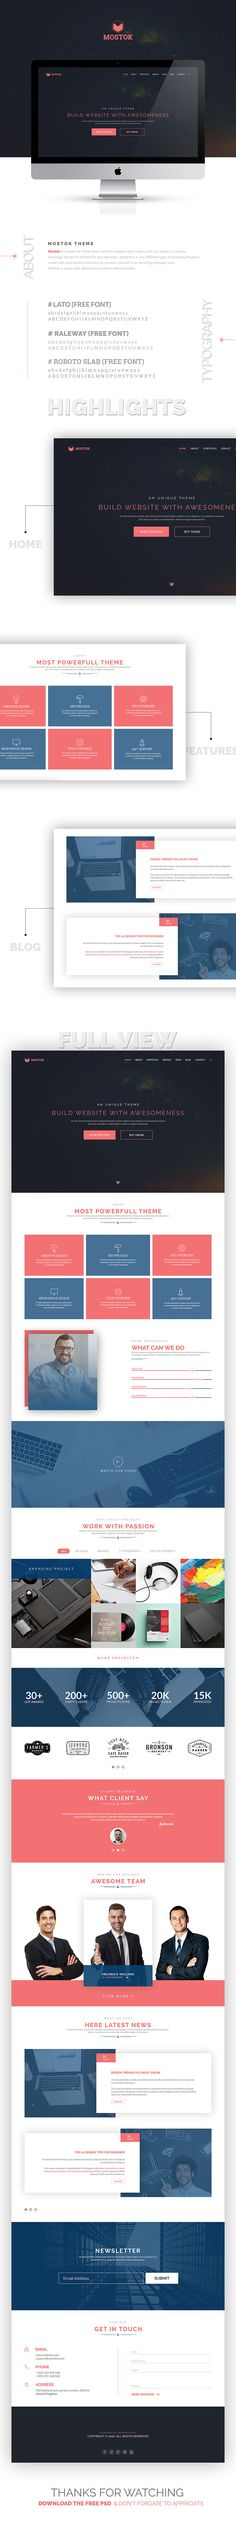 Freebie - Mostok One Page Agency Template on Behance